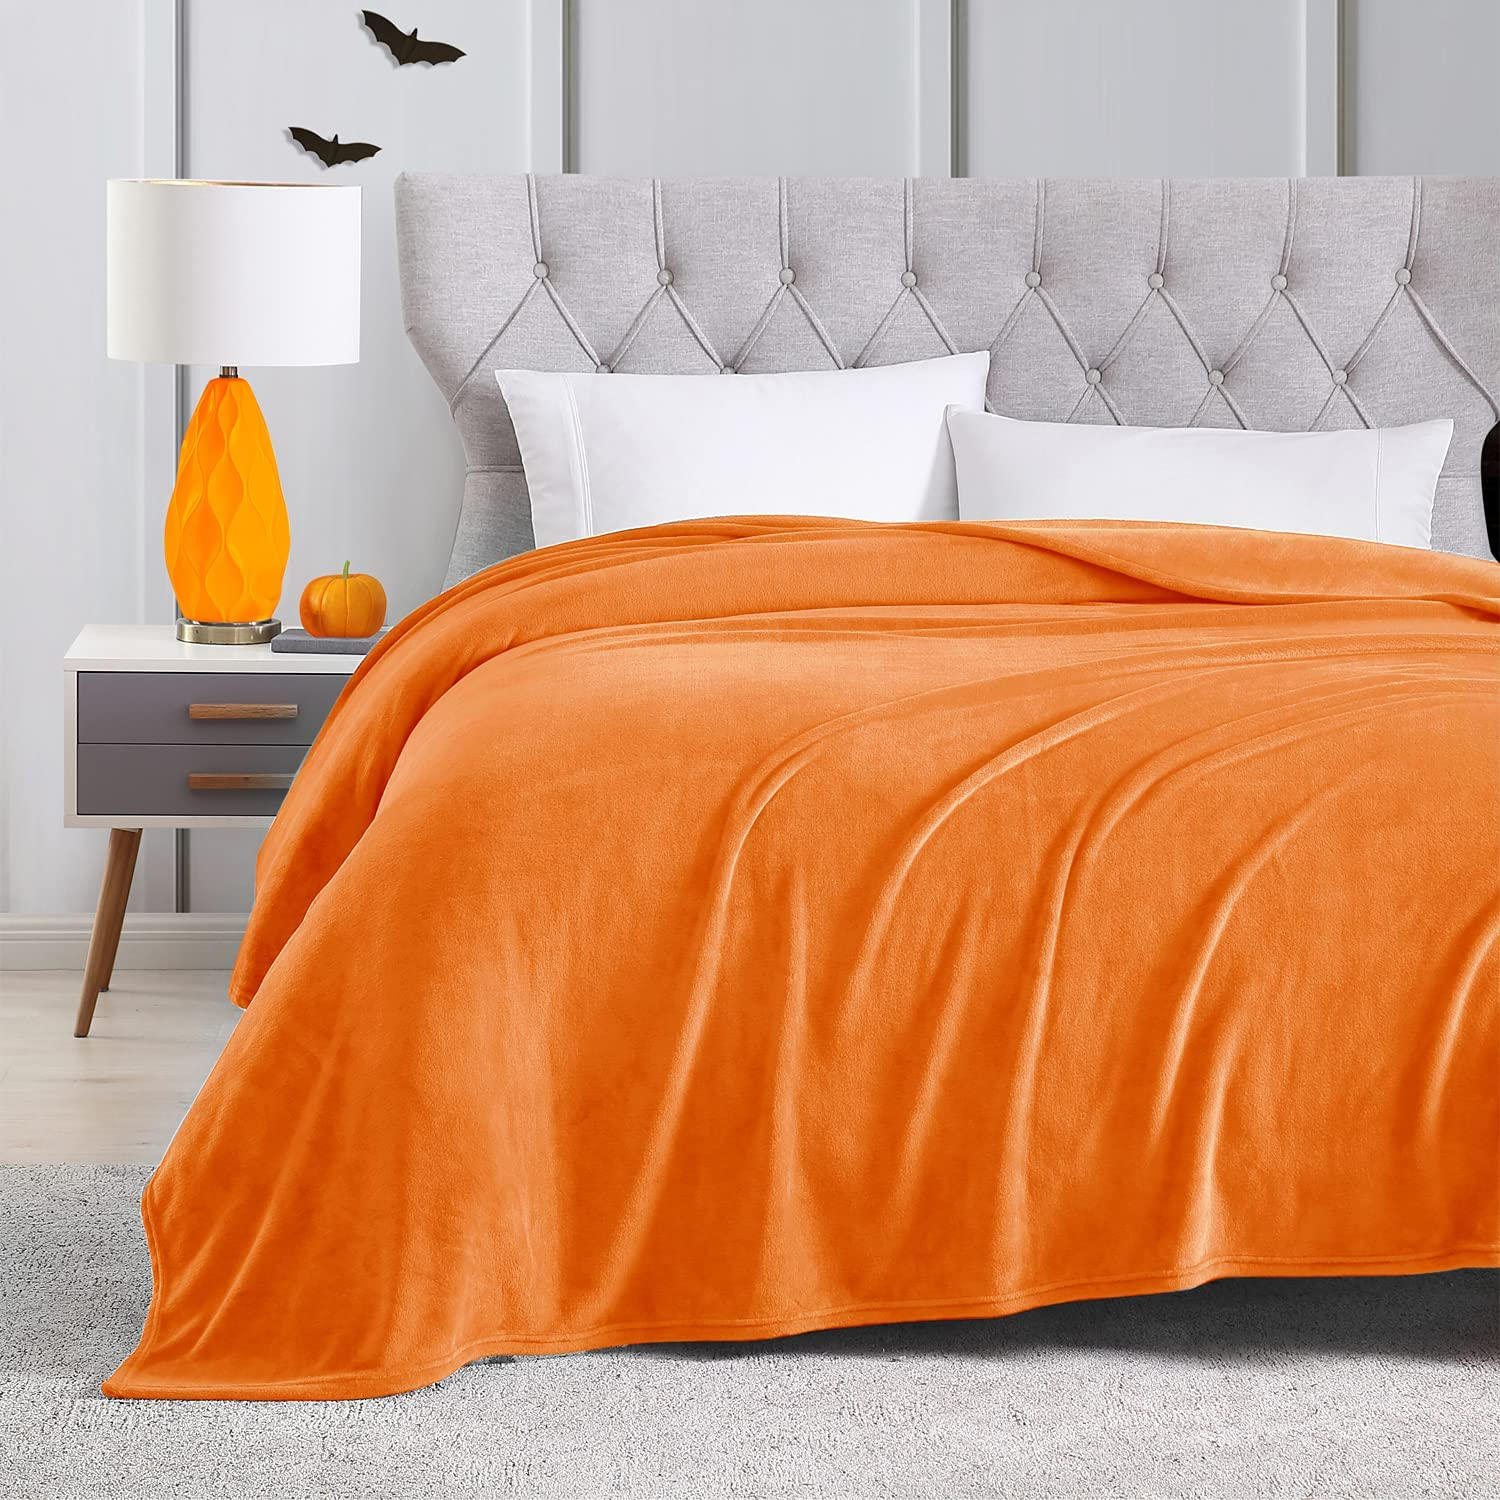 EXQ Home Fleece Blanket Today's only Very popular! King Size Orange for Bed o Throw